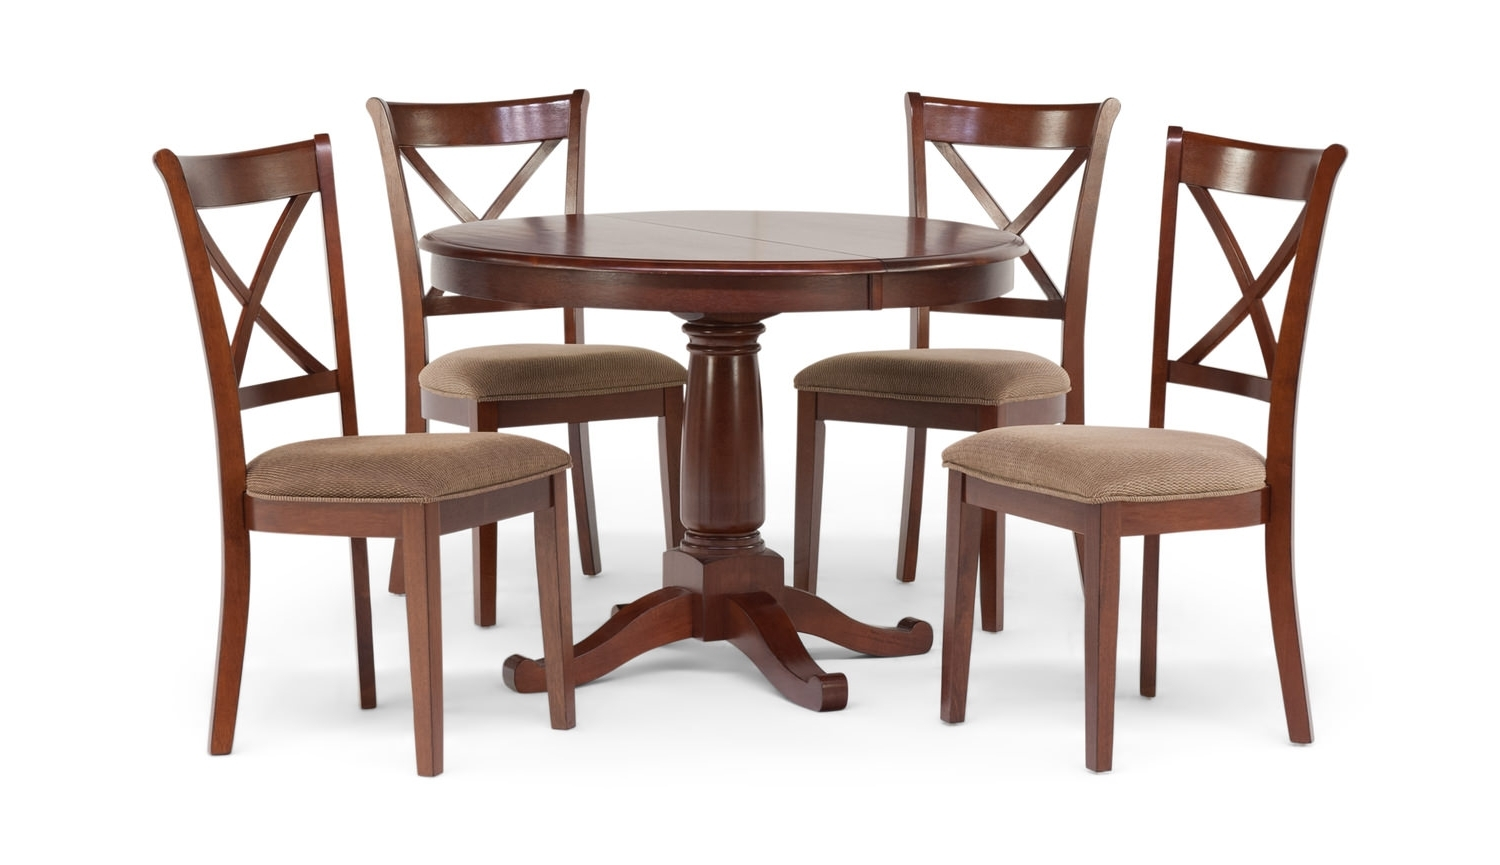 Hom Furniture Intended For Well Liked Caden Rectangle Dining Tables (View 11 of 25)